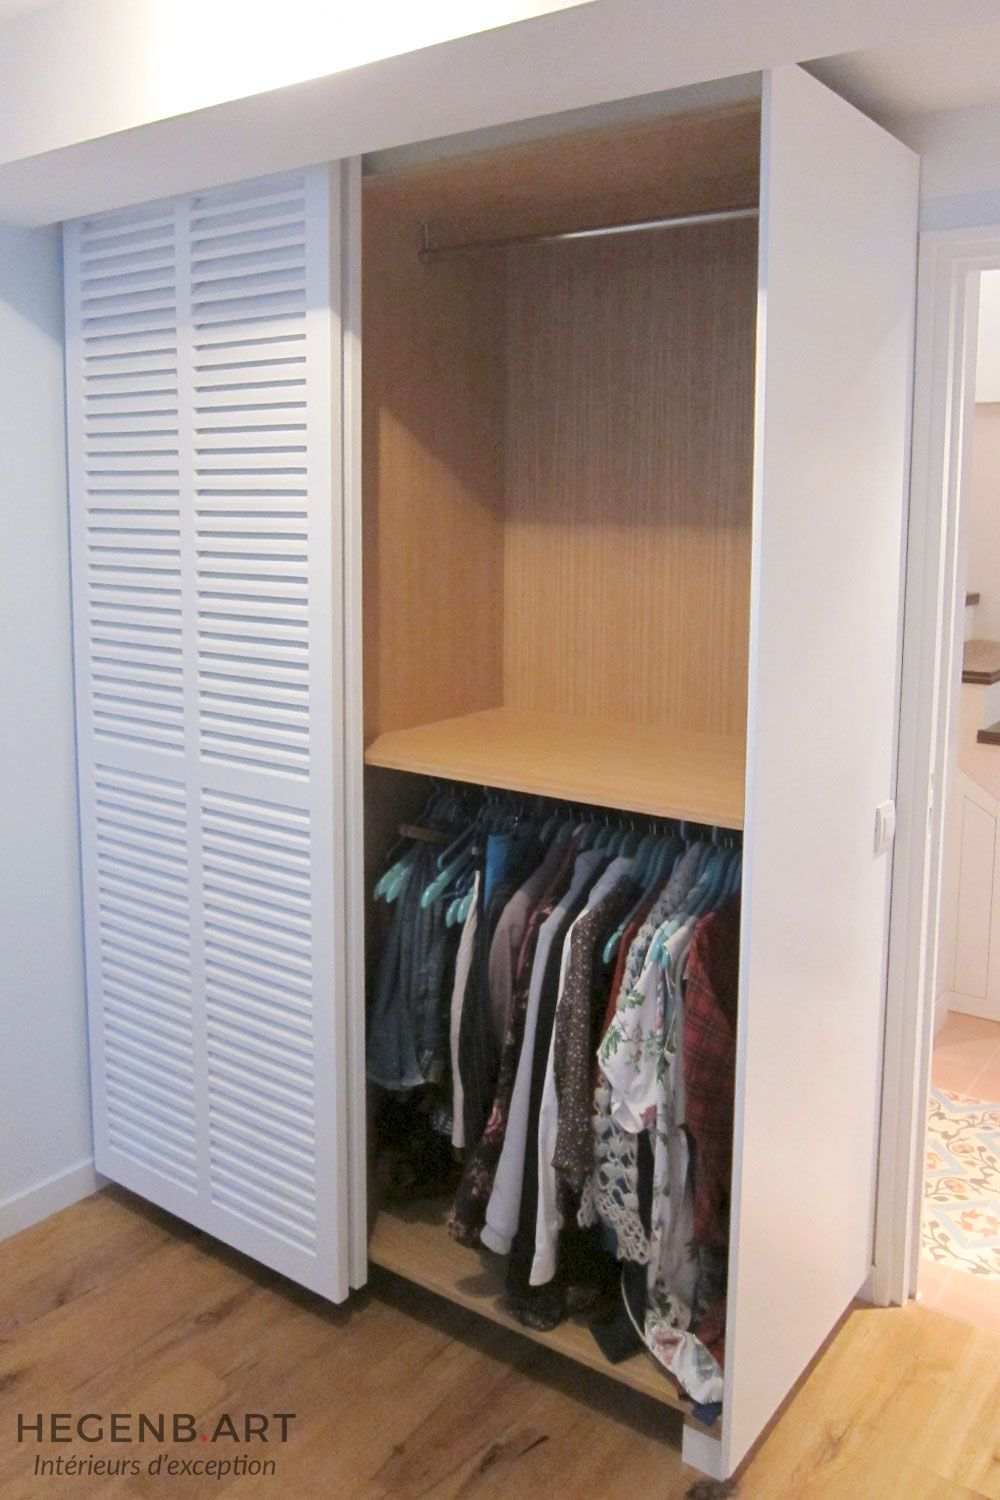 Contemporary Custom Cupboard With Blind Door By Hegenbart In 2021 Armoire Makeover Armoire Diy Armoire Repurpose